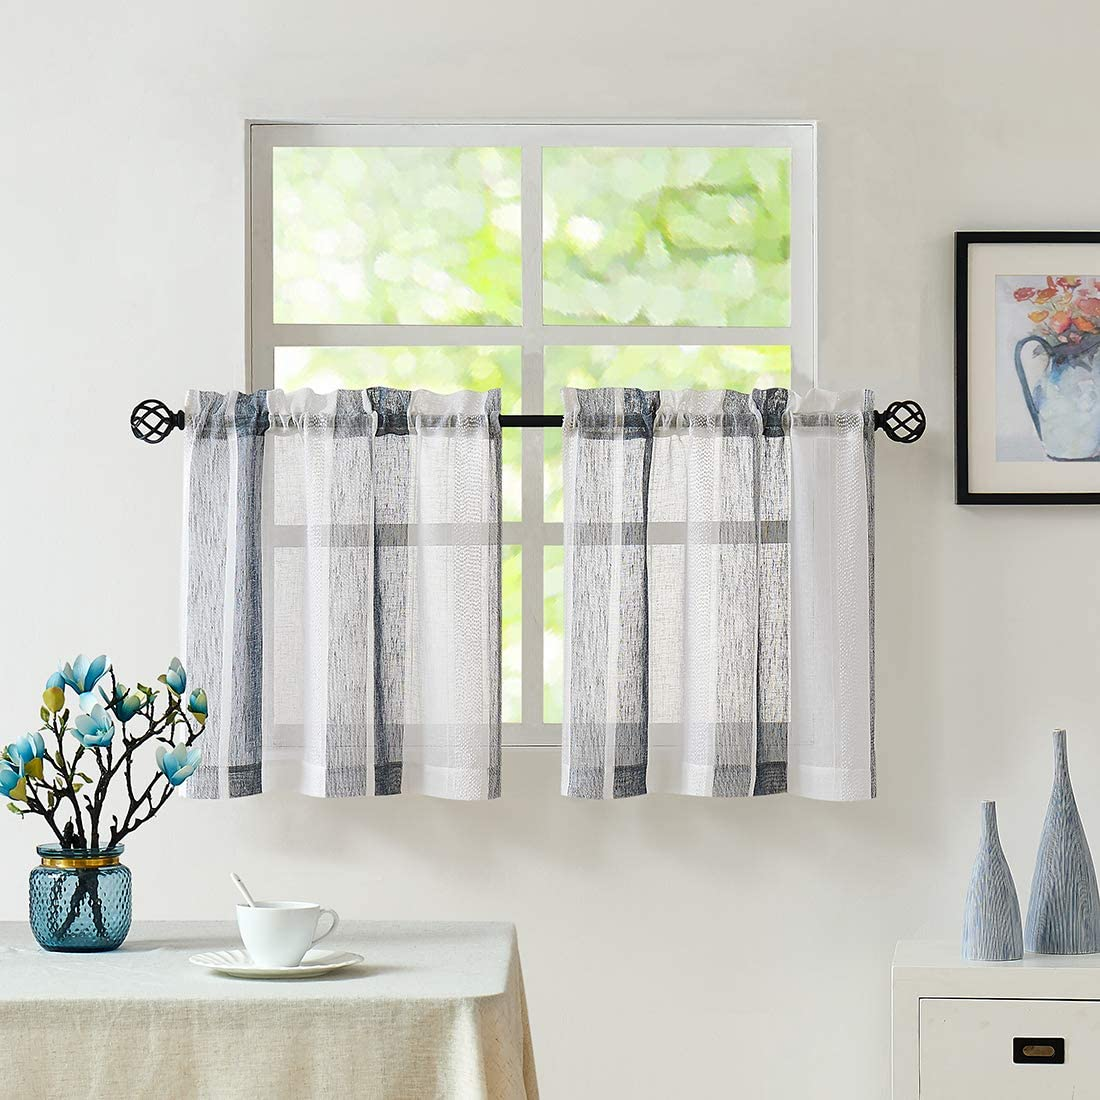 Central Park Navy Blue and White Kitchen Window Curtain Tiers Vertical Stripe Sheer Boucle Linen Window Curtain, Living Room Decorative Rod Pocket Rustic Living 2 Panels (28